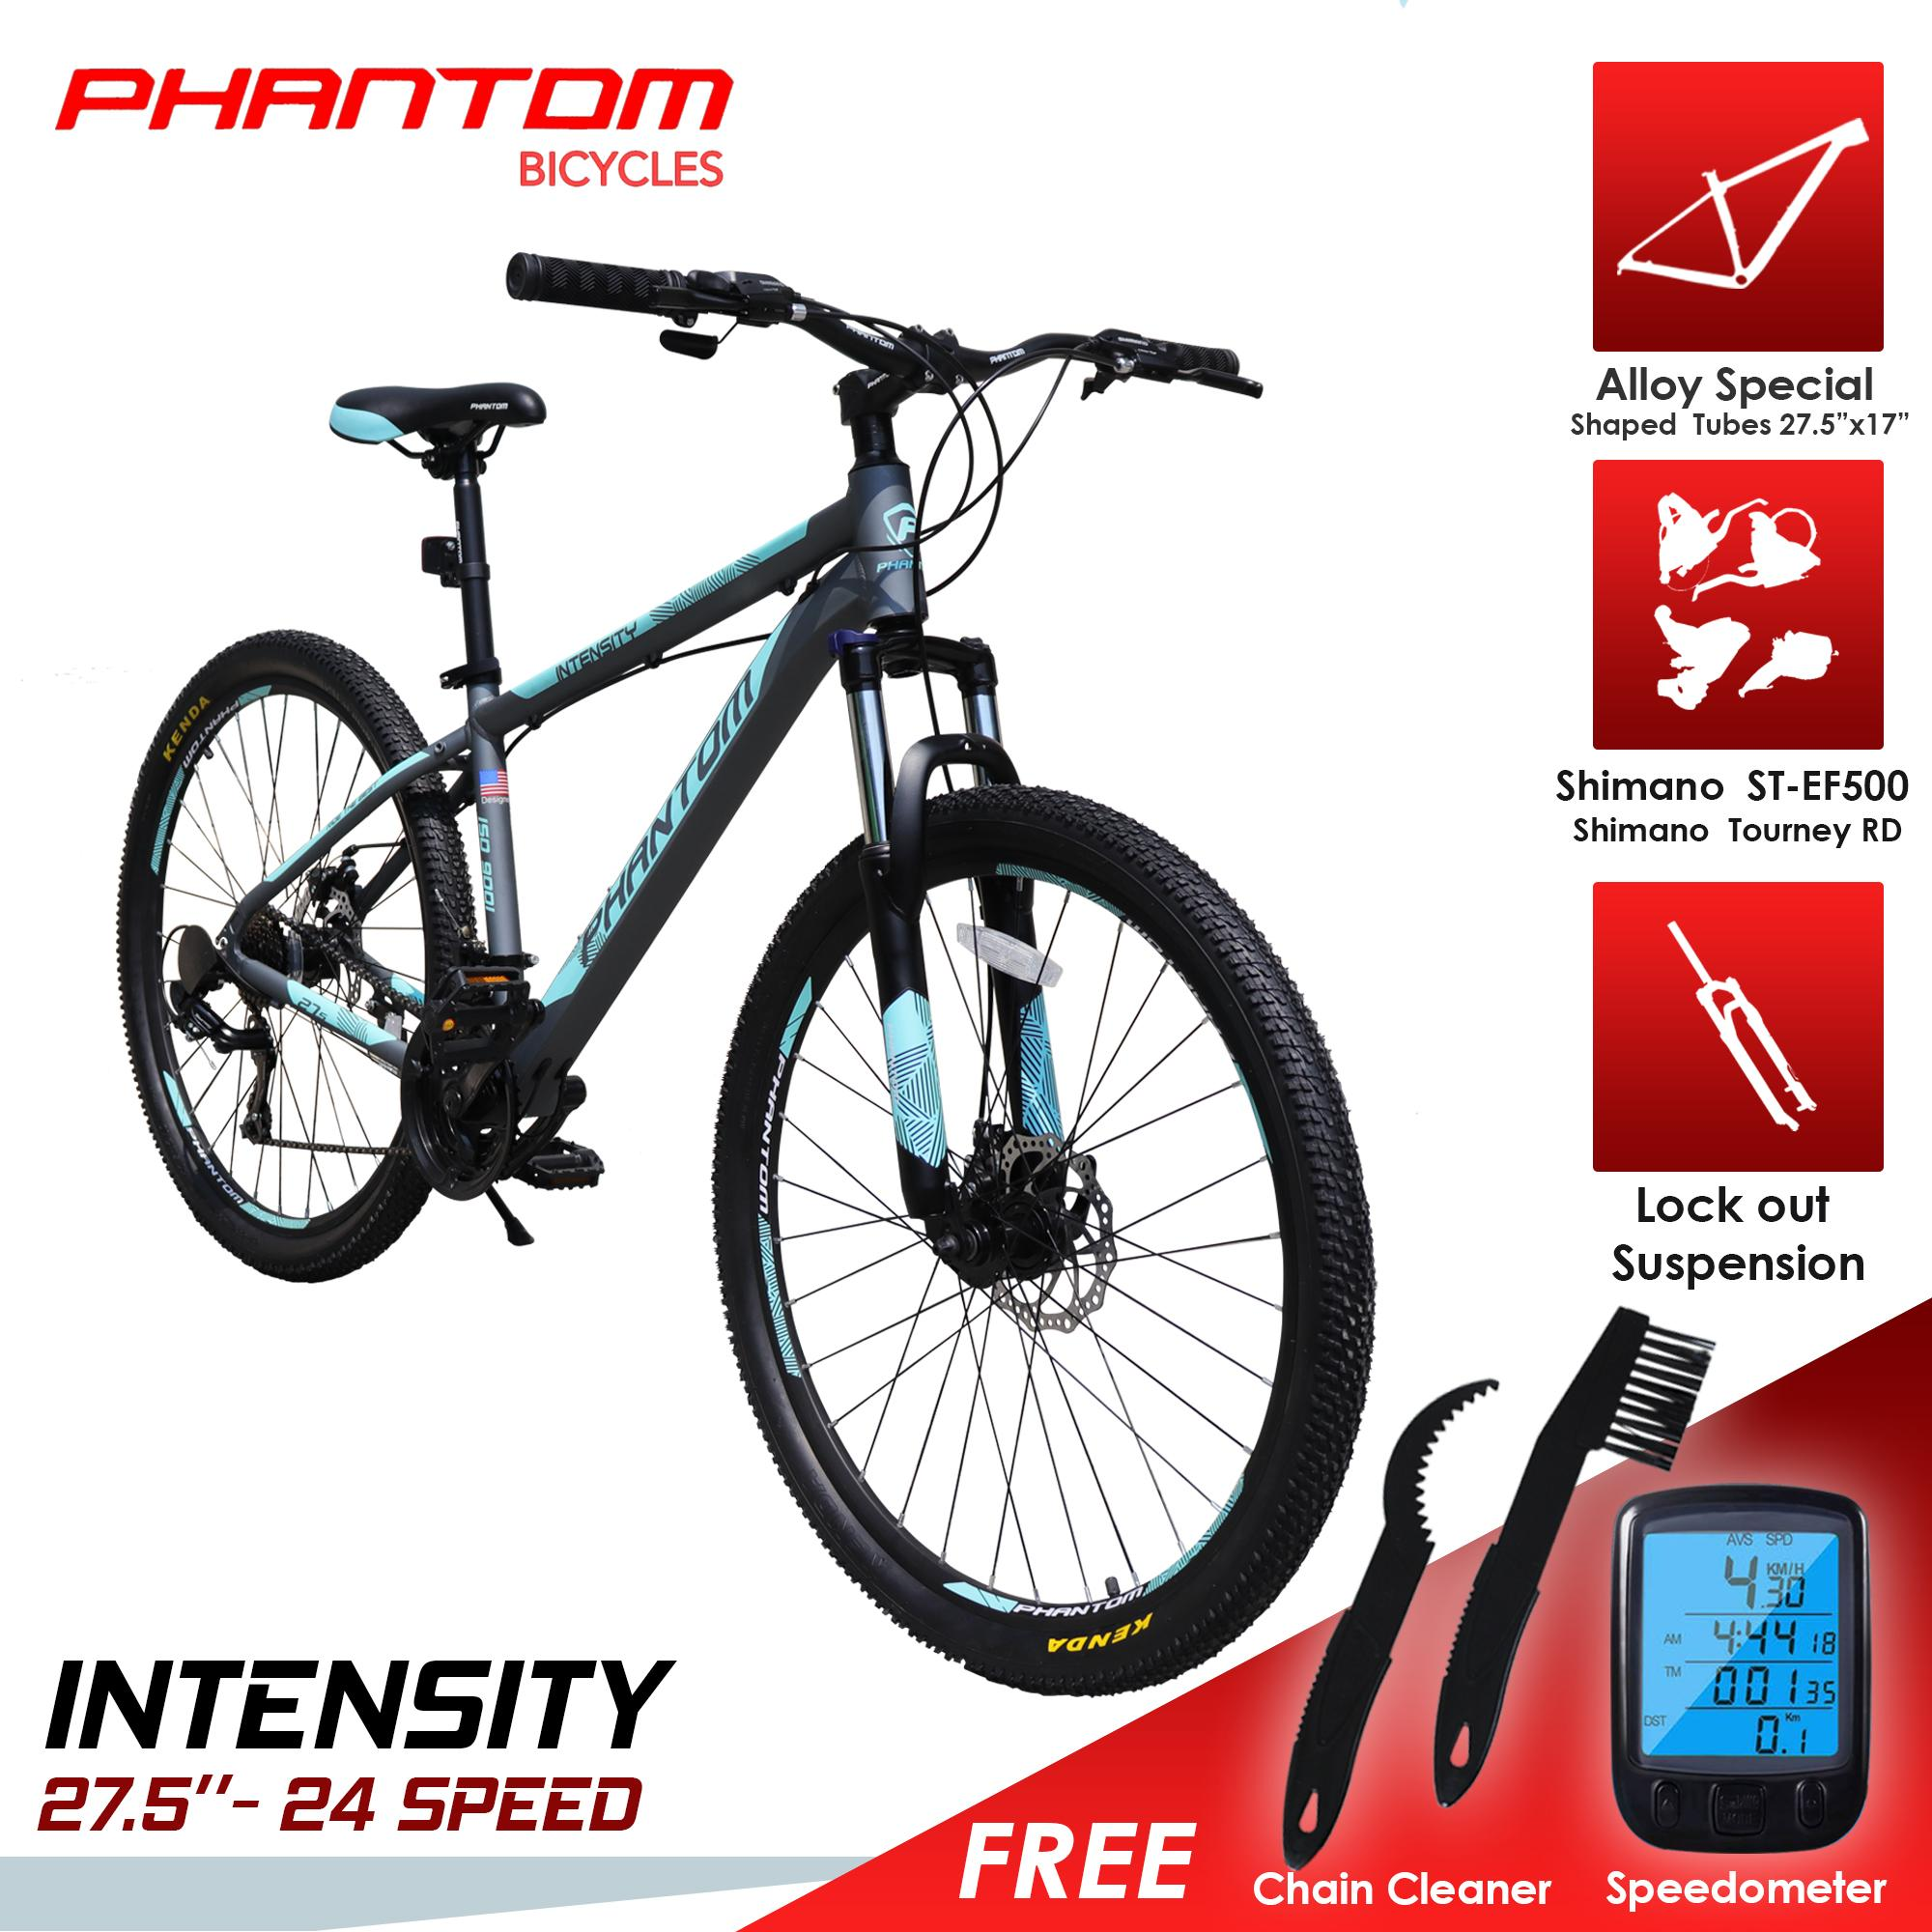 """7c73788e5dd PHANTOM INTENSITY 27.5""""- 24 SPEED ALLOY FRAME with FREE WIRELESS  SPEEDOMETER and 2 in"""